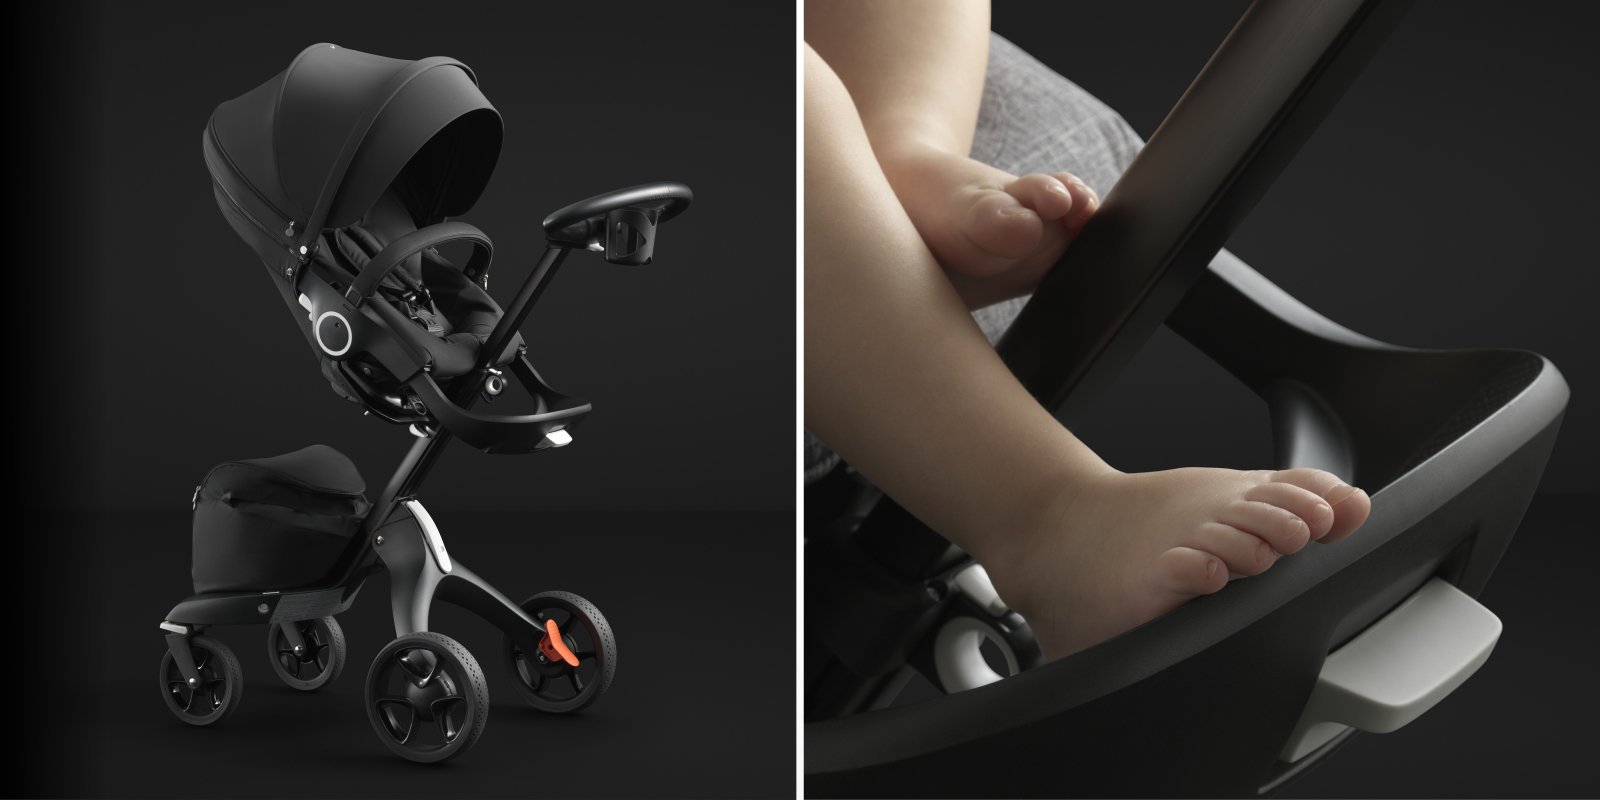 Stokke® Xplory® Black Chassis, with Stokke® Stroller Seat, Black, and detail close up.